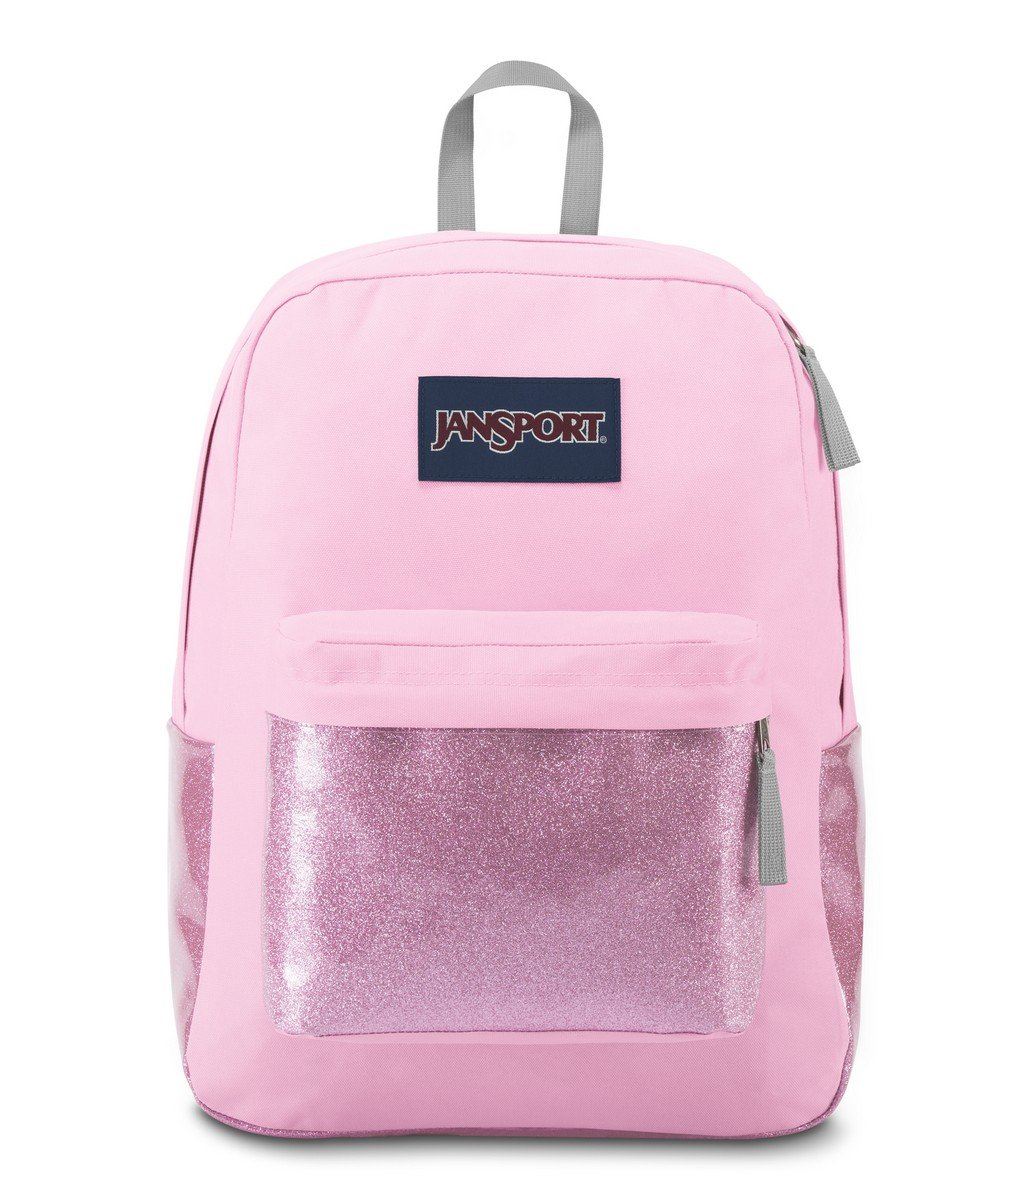 JanSport High Stakes Backpack- Sale Colors (Prism Pink Sparkle)